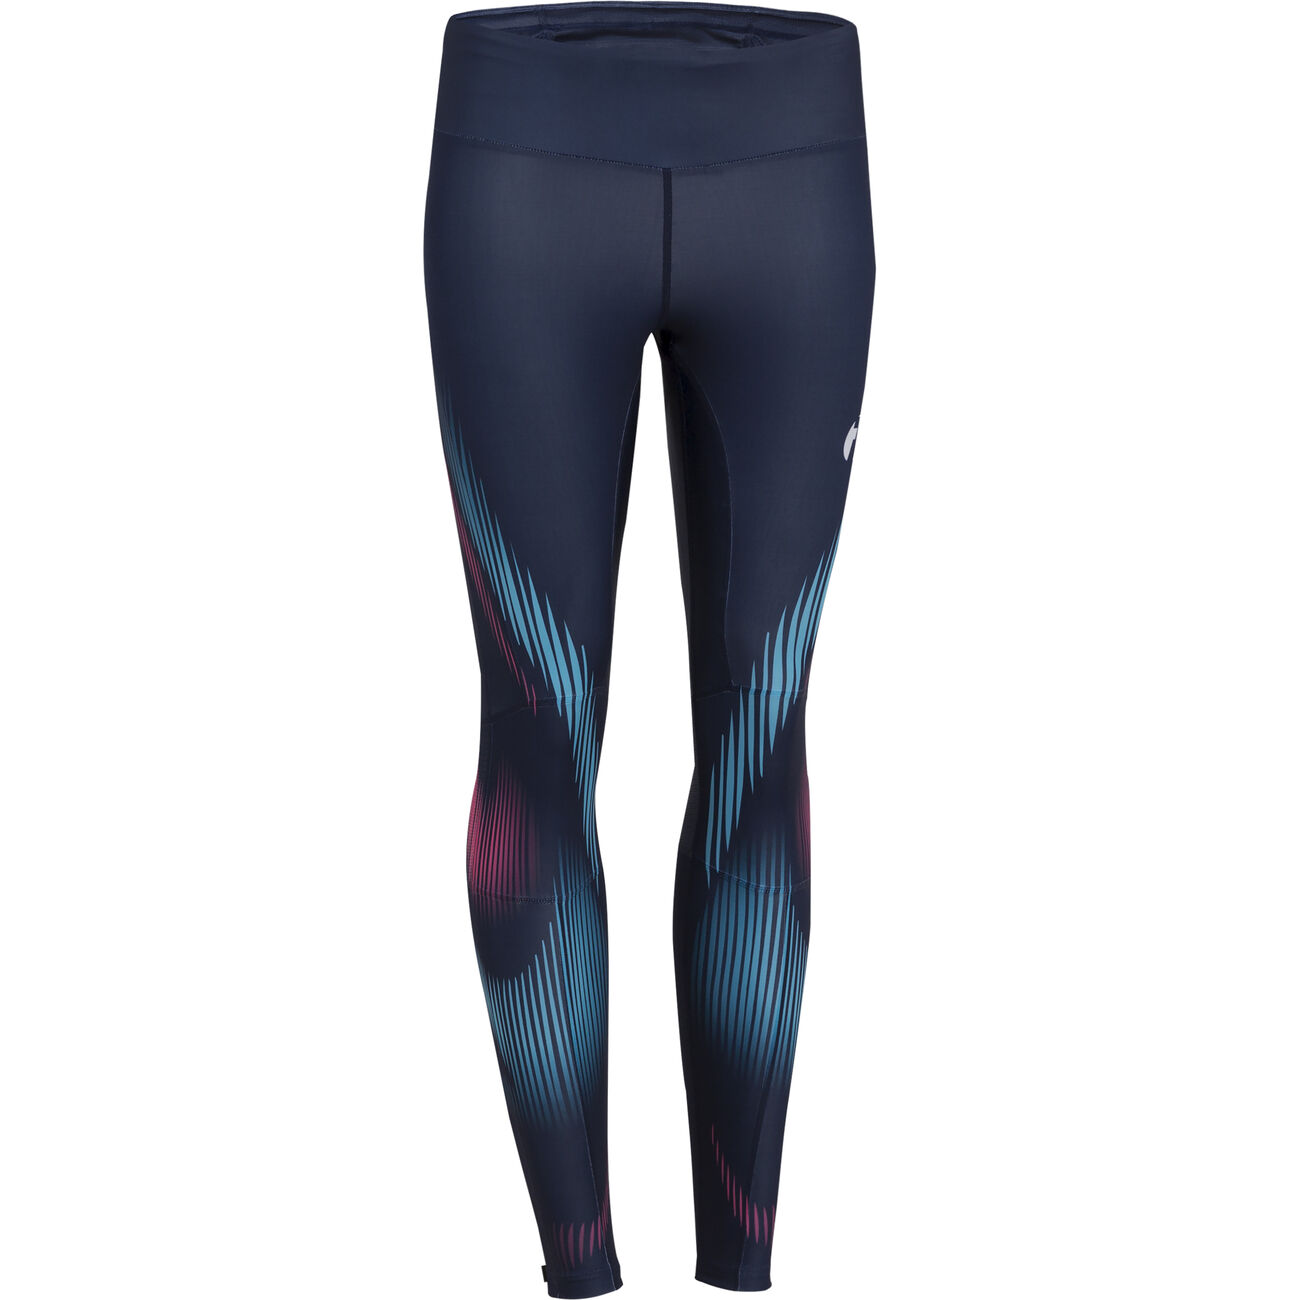 Compress tights women's - Revised